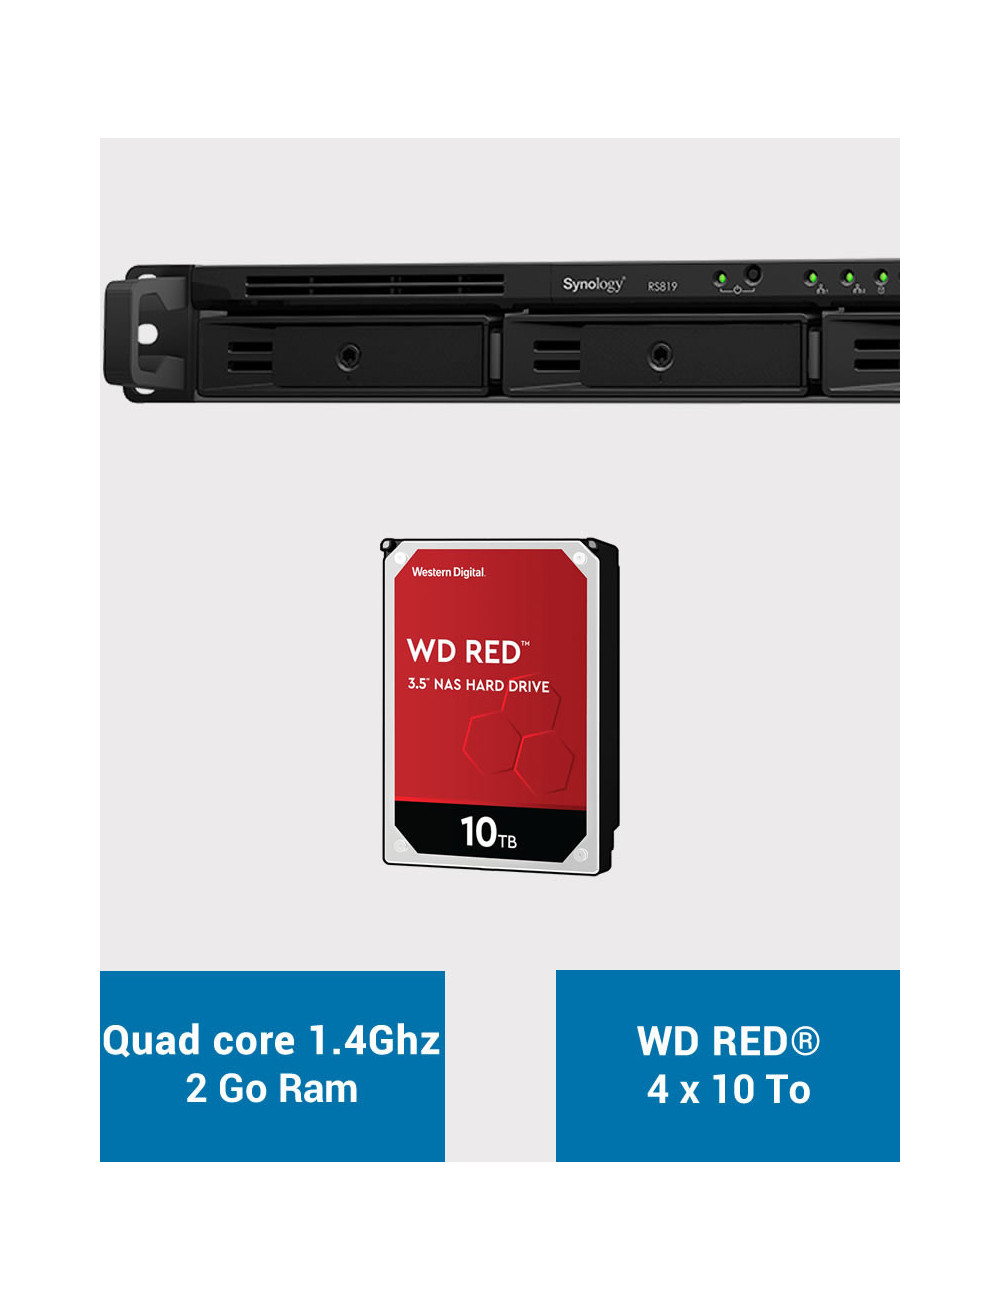 Synology RS819 NAS Server WD RED 40TB (4x10TB)